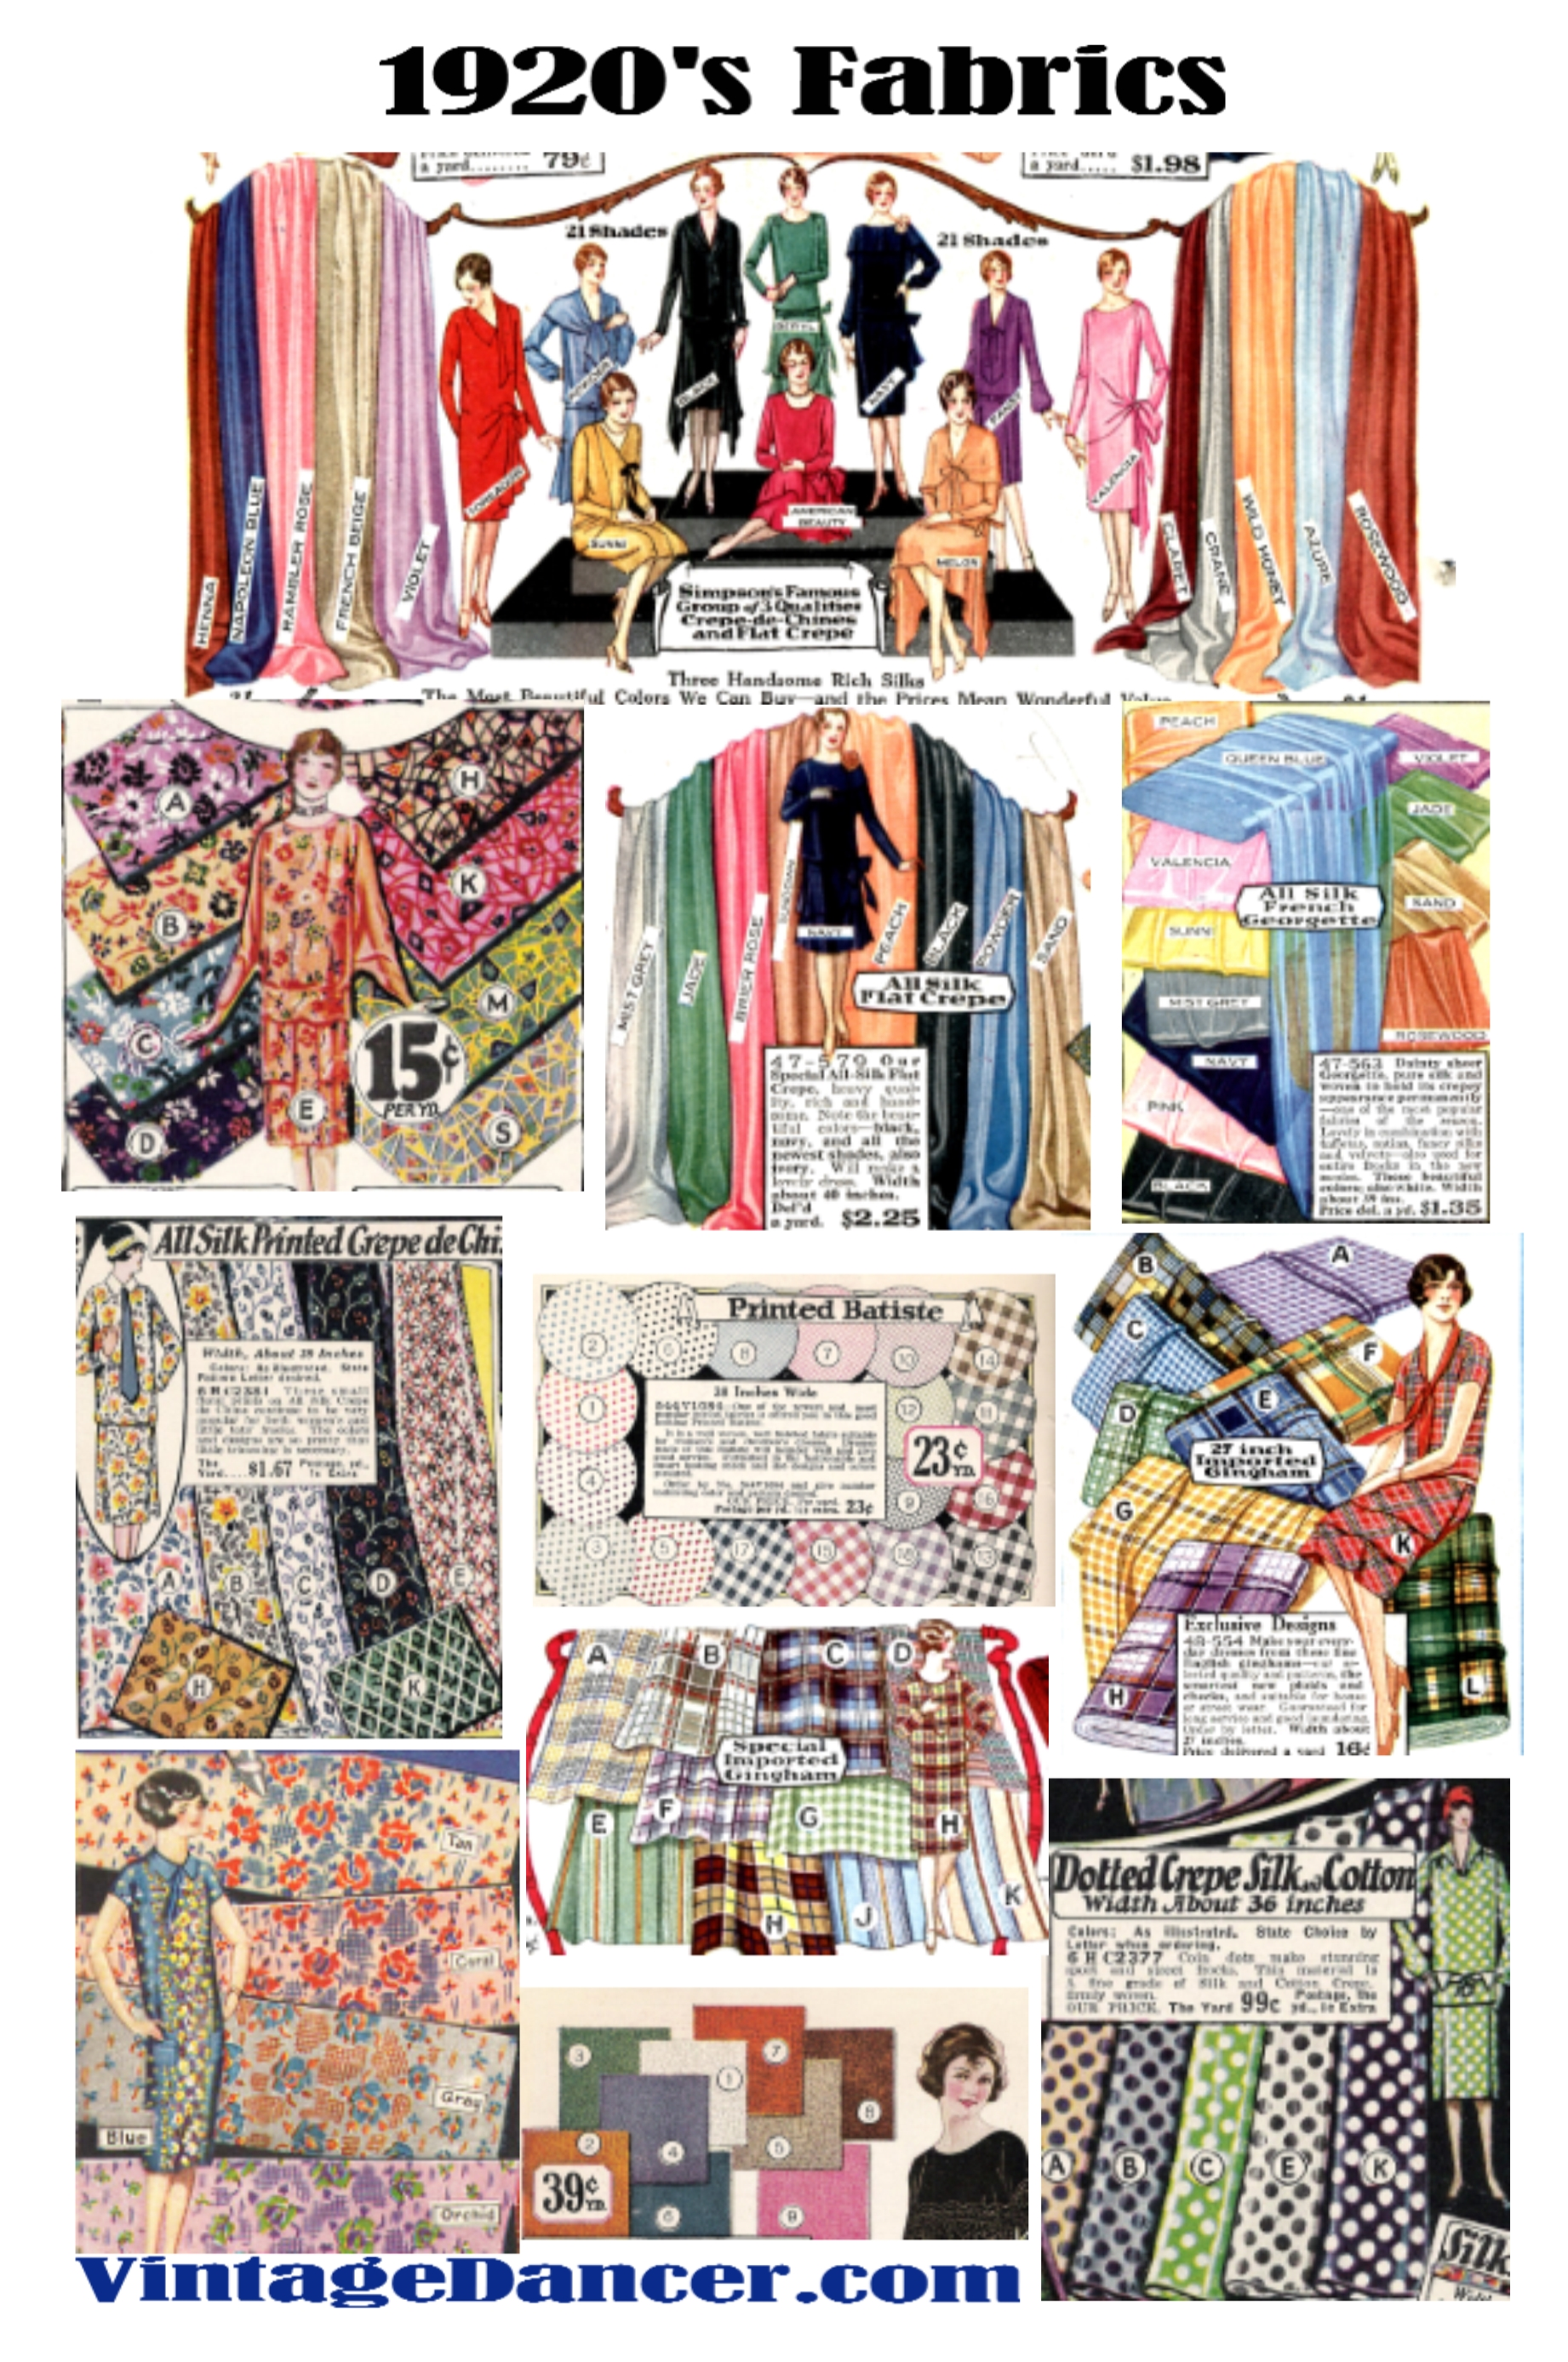 1920s fabrics for fashion. Silk, satin, rayon, cotton, velvet, wool in bright or pastel solid colors and fun prints.